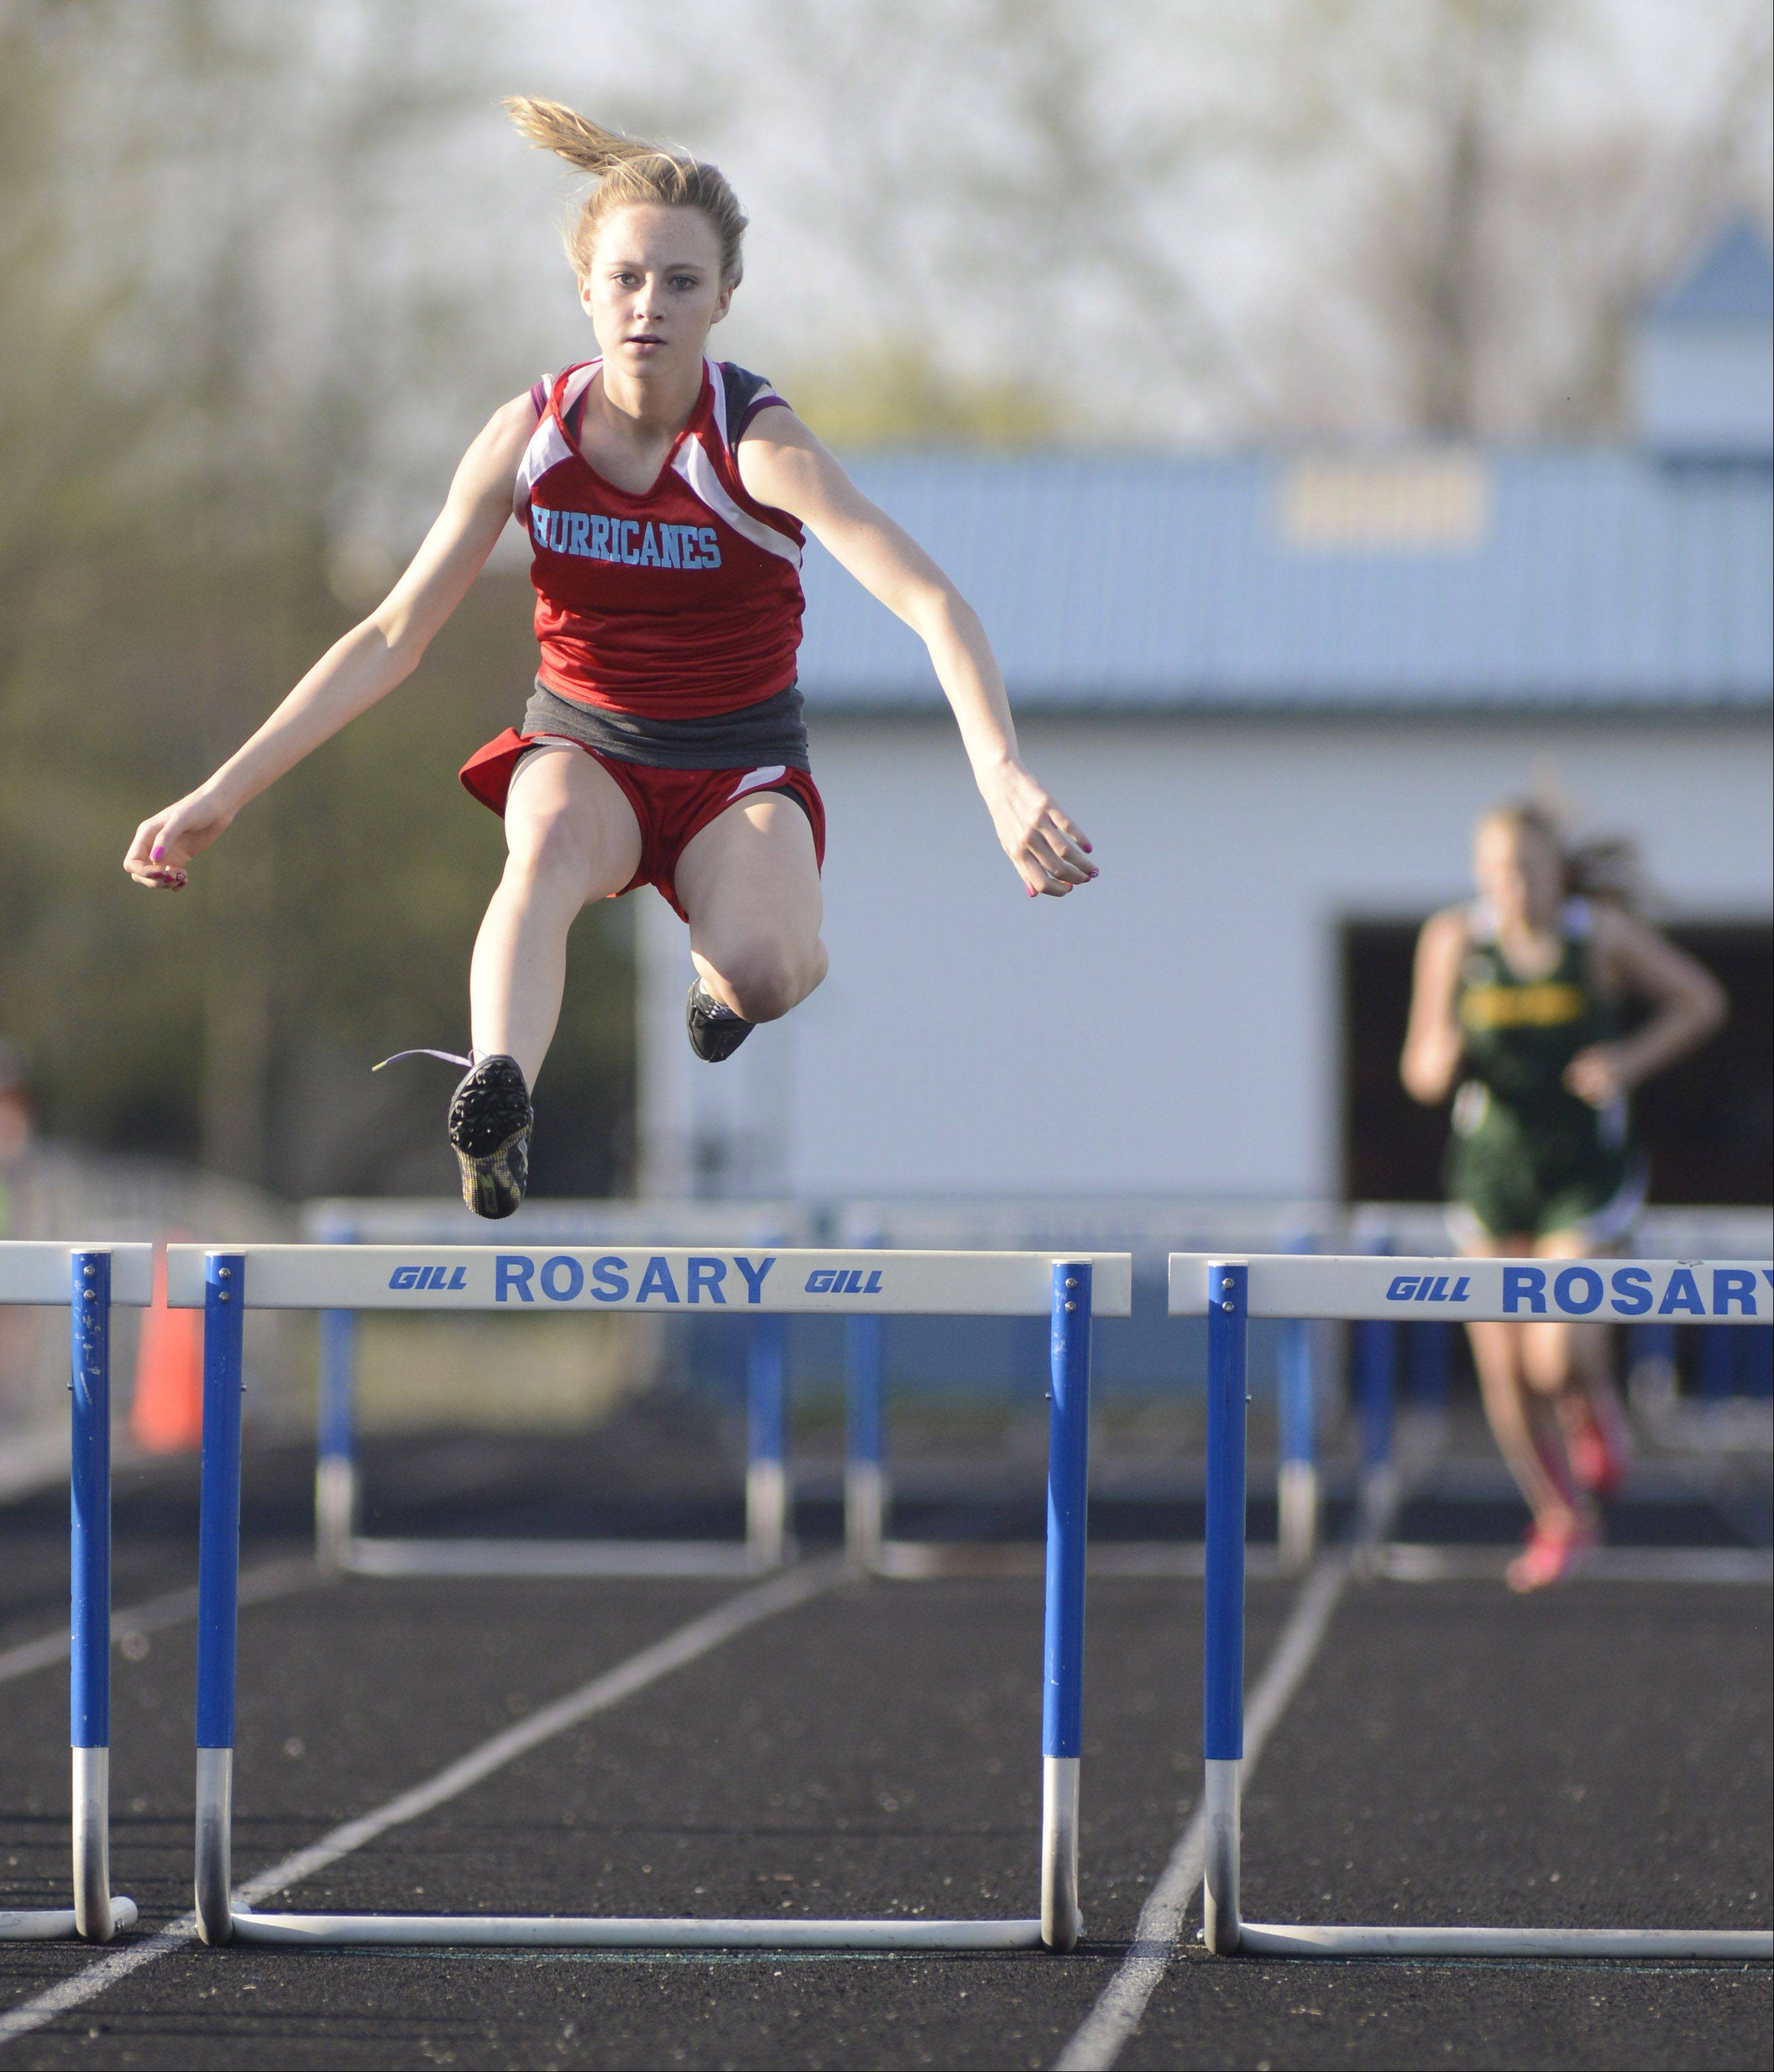 Marian Central's Rachel McNulty soars over the final hurdle in the first heat of the 300 meter hurdles at the Suburban Christian Conference on Wednesday, May 1.